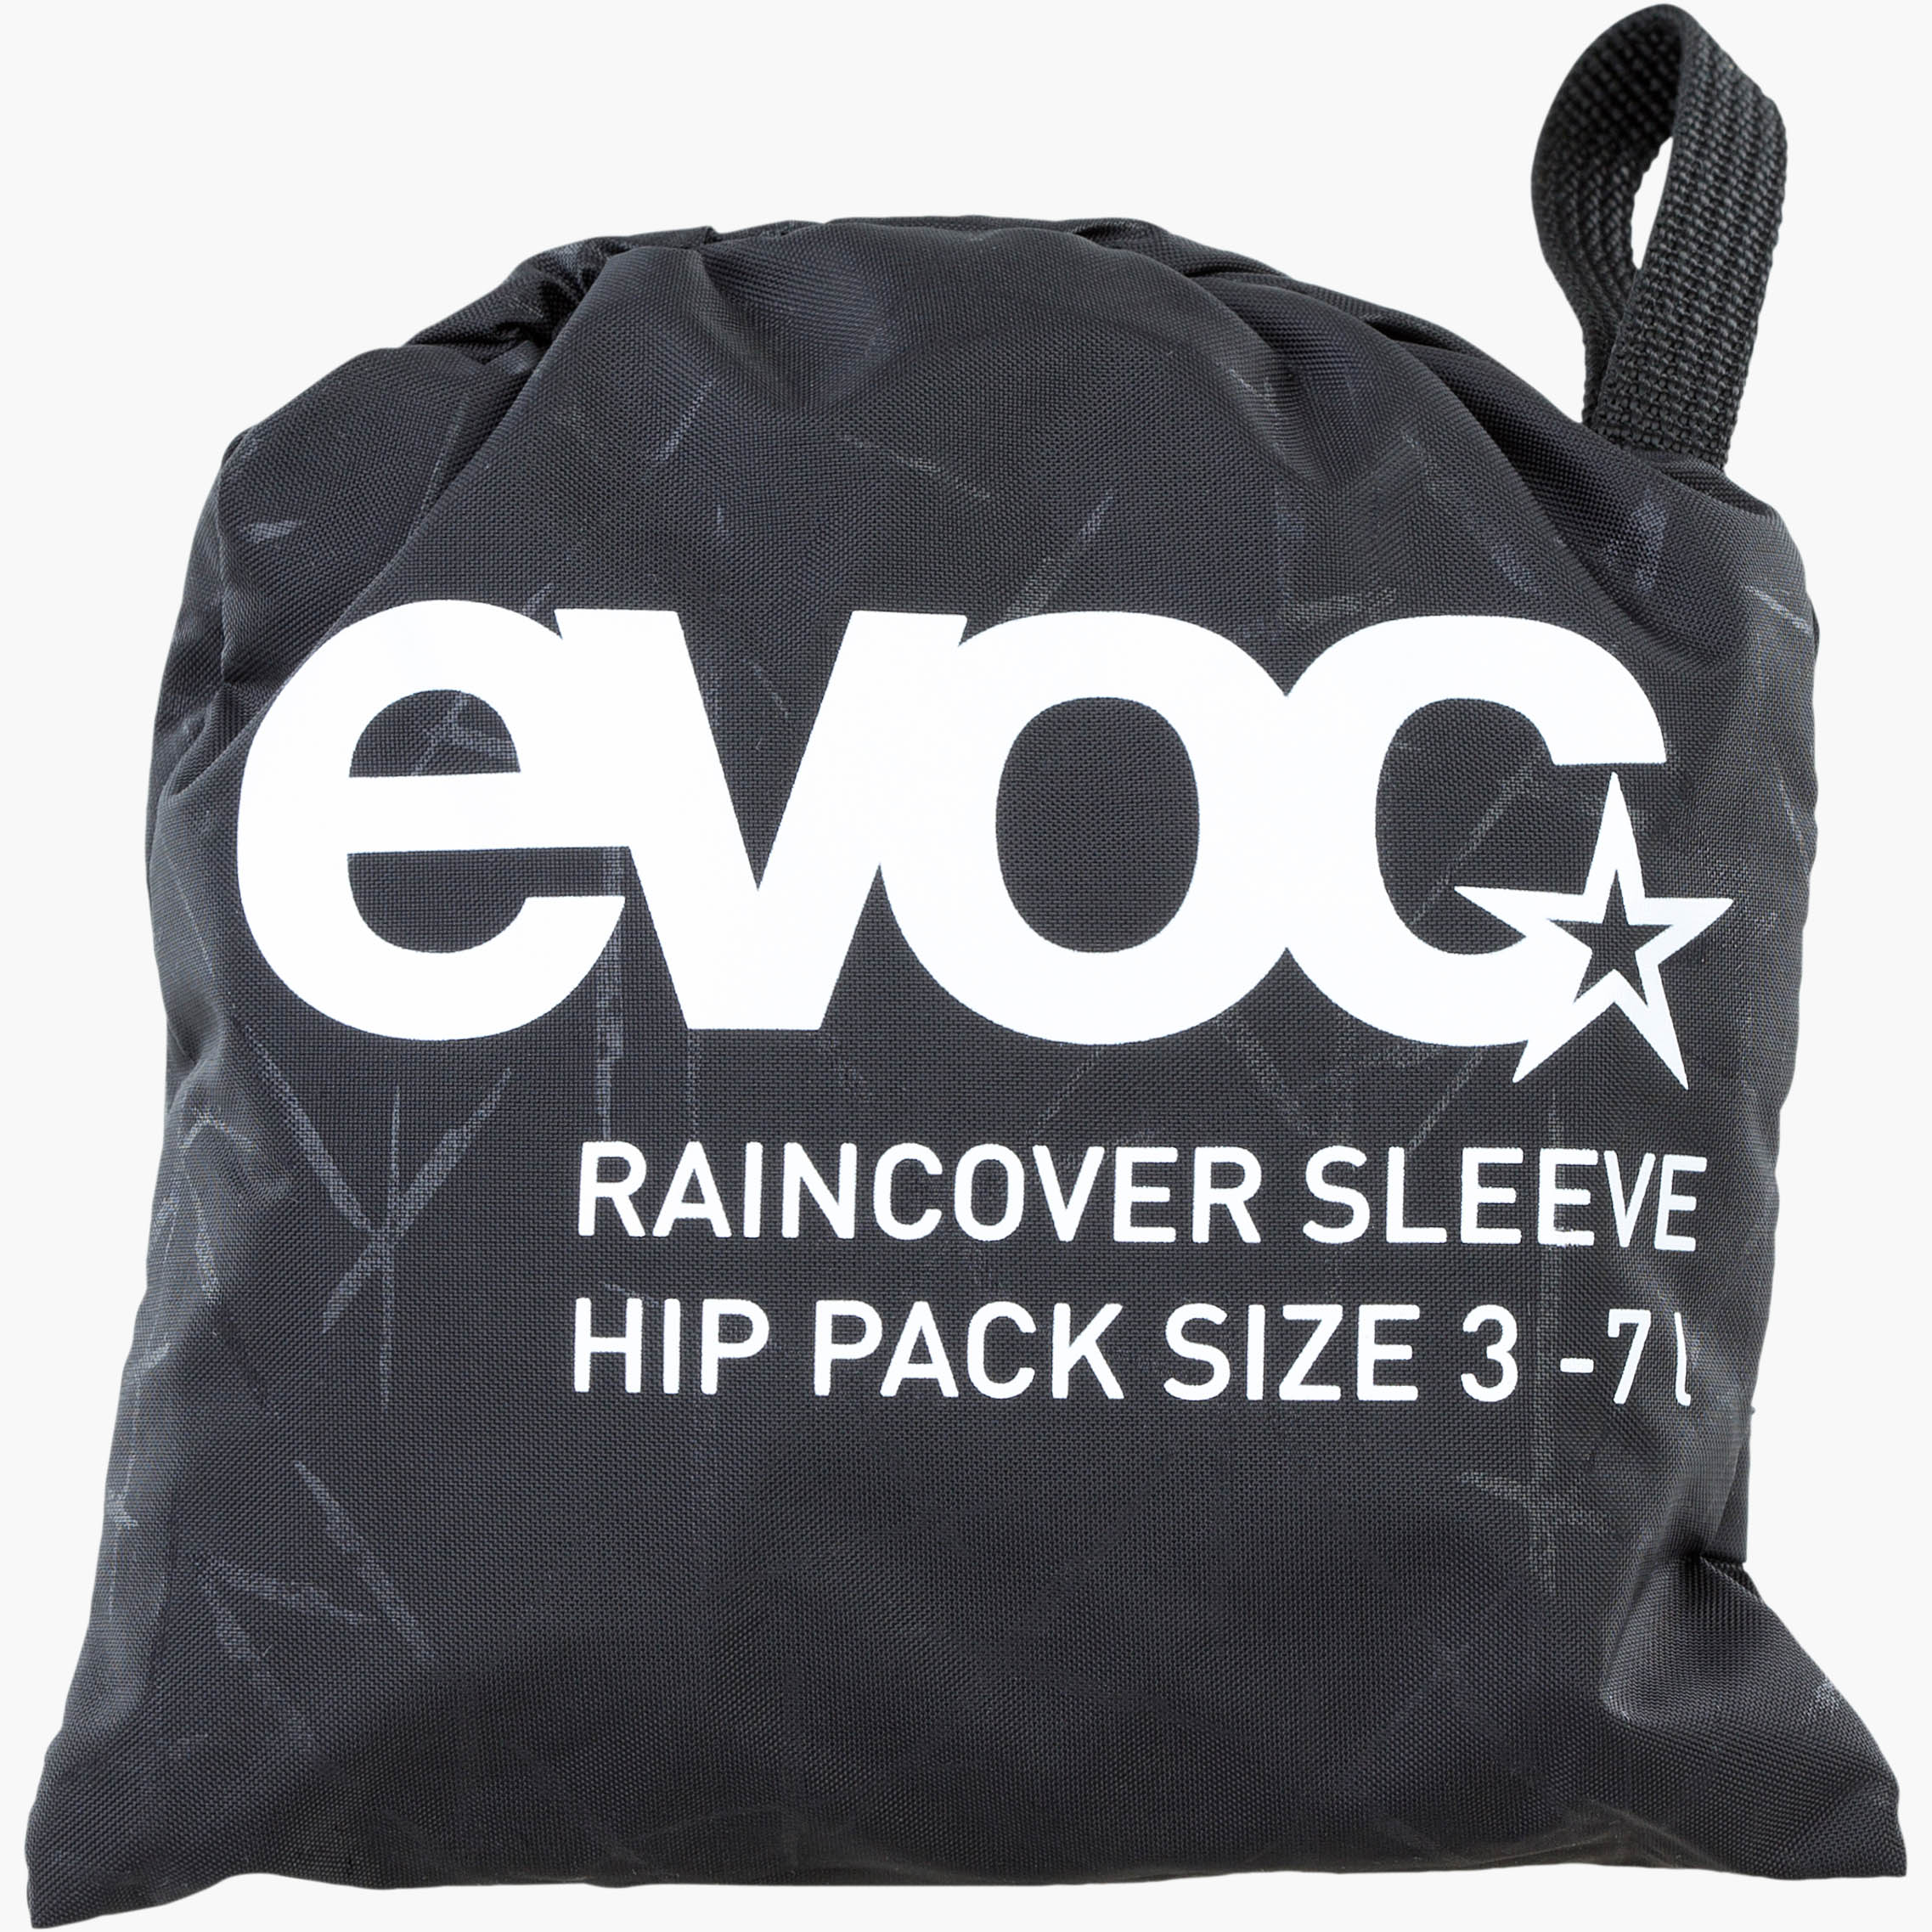 RAINCOVER SLEEVE HIP PACK